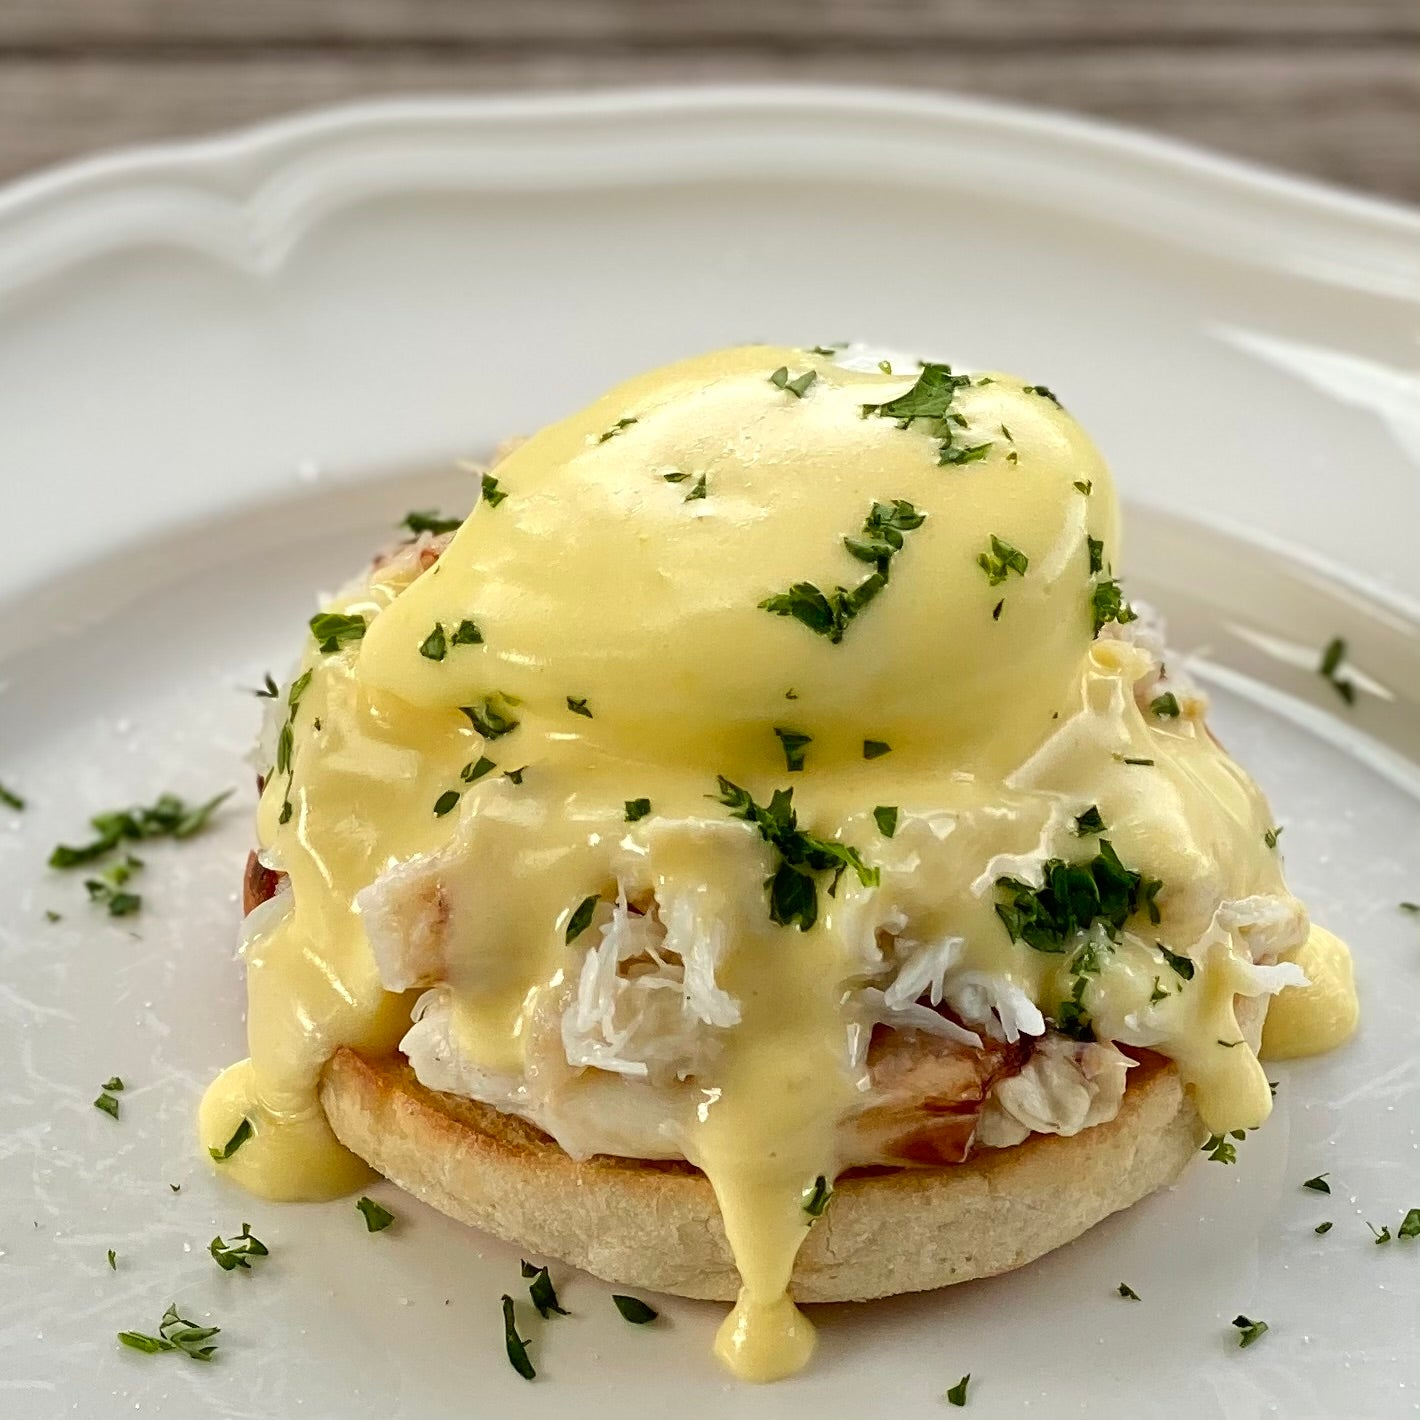 Cousin Kelly's Dungeness Crab Benedict